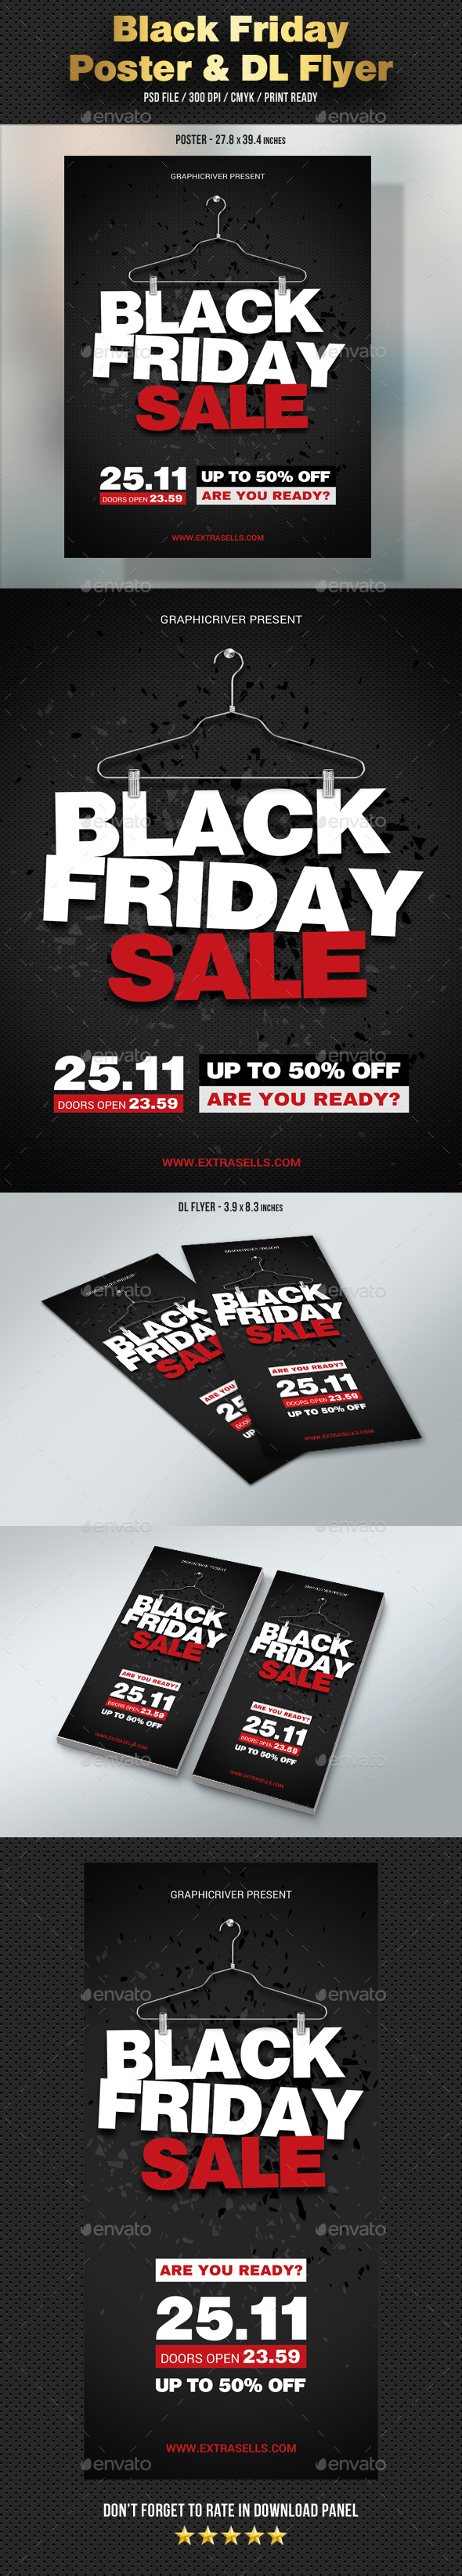 GraphicRiver Black Friday Poster and DL Flyer 20998246